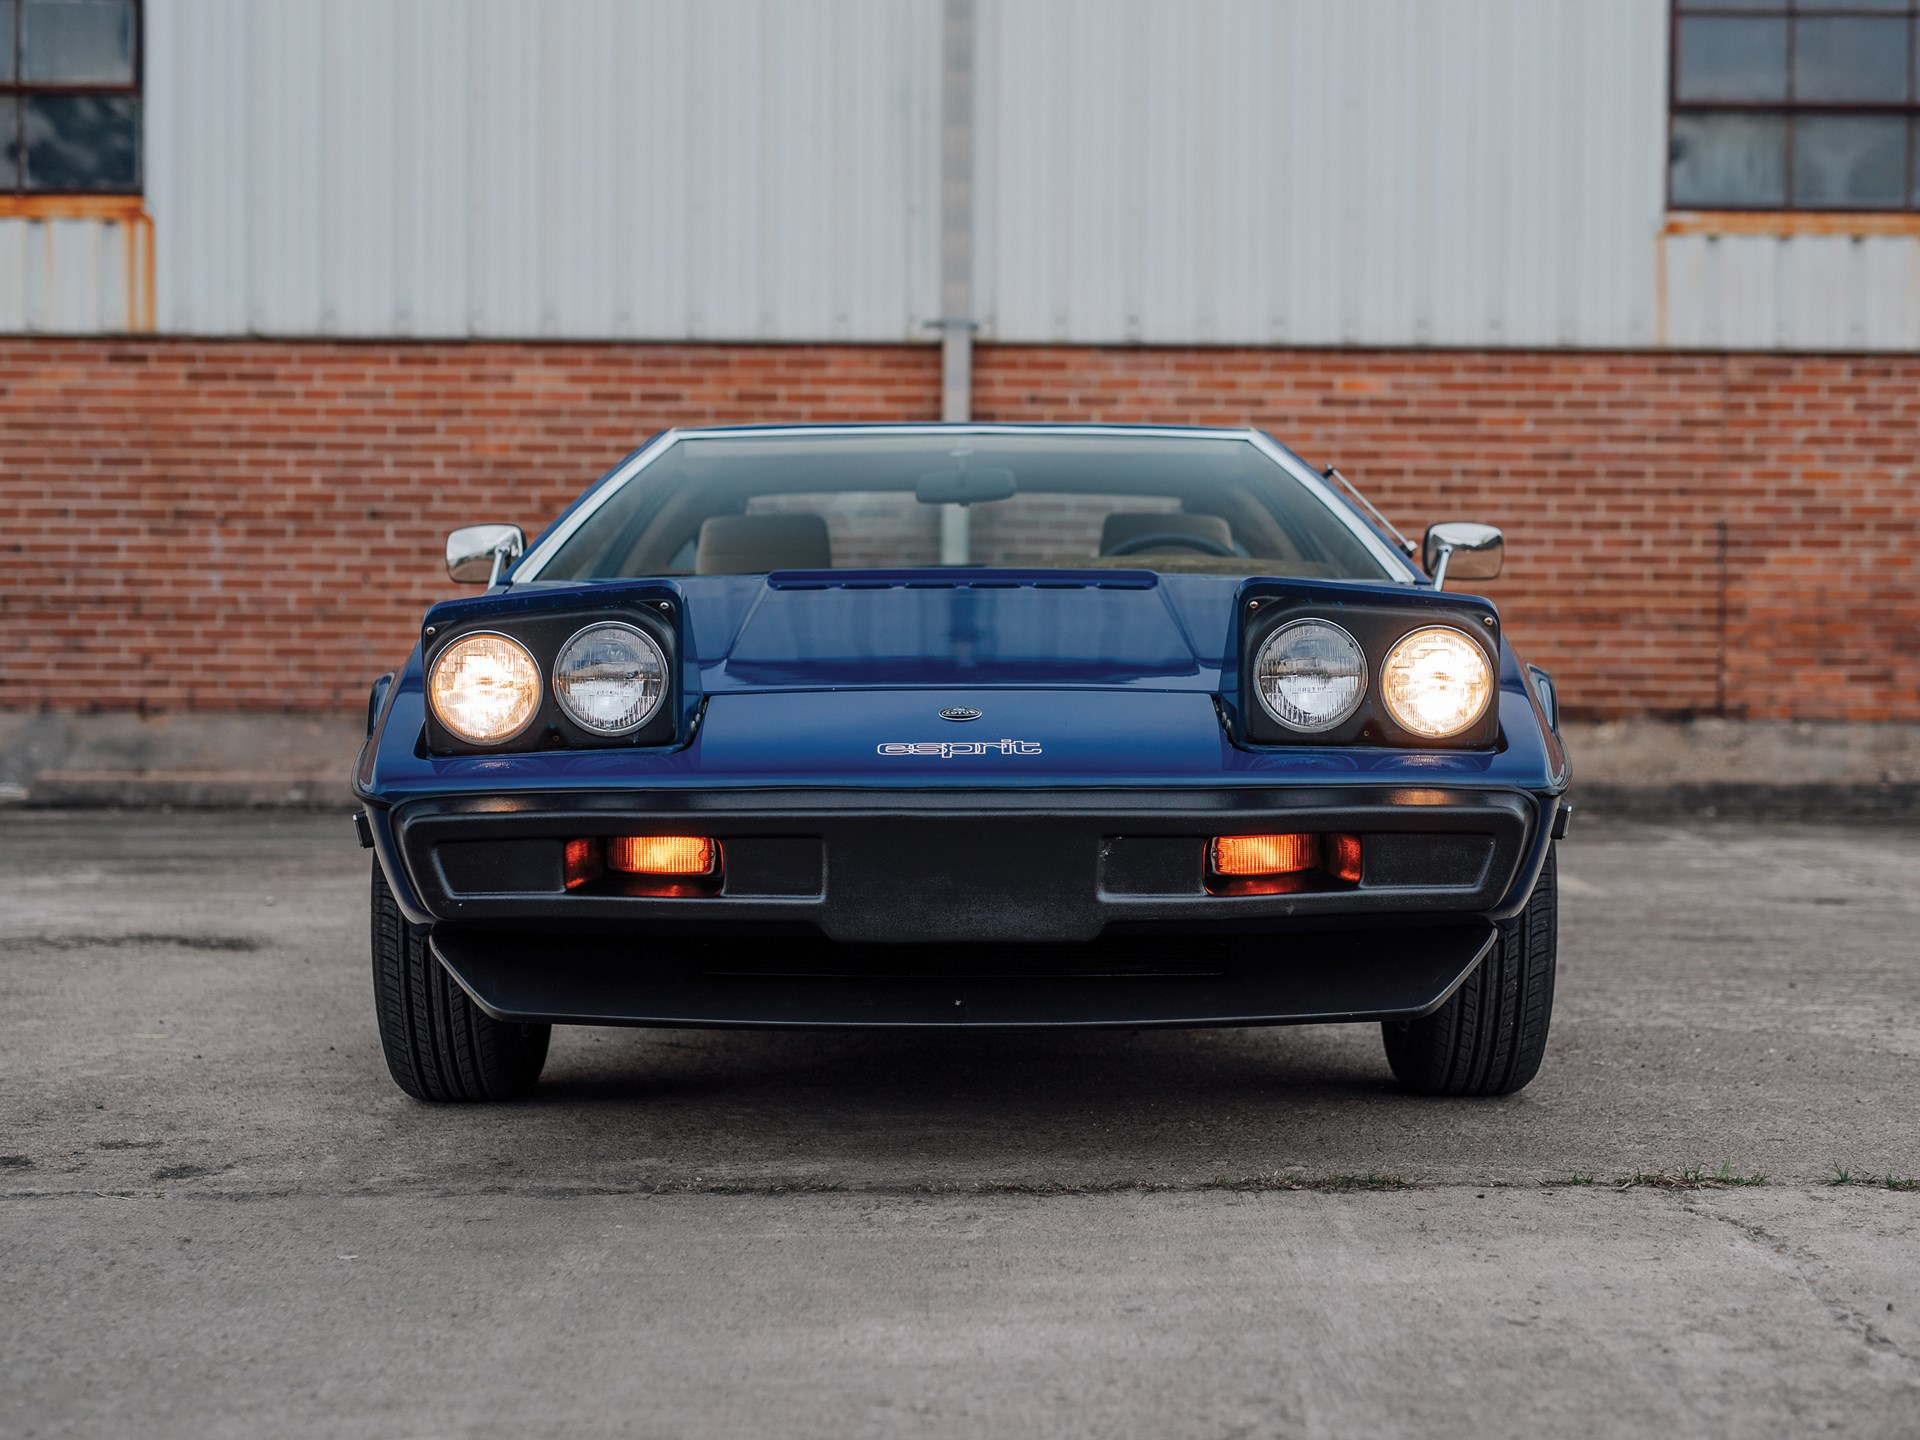 1977 Lotus Esprit Series 1 front end